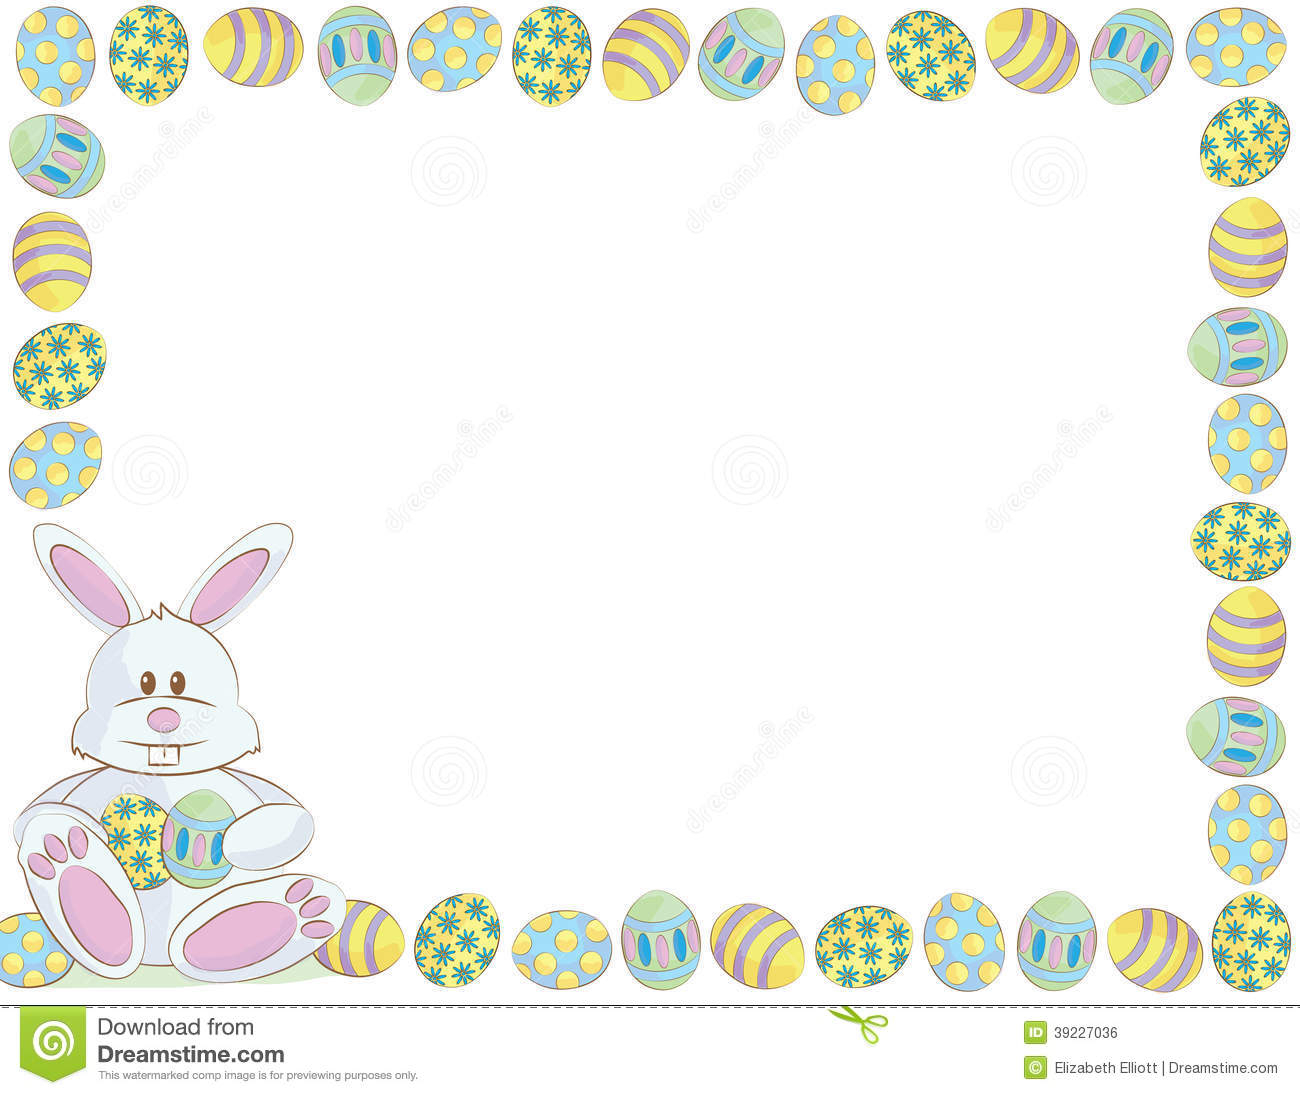 Easter Bunny Letter Template Bunny Clipart Frame 8 - Happy In Letter To Easter Bunny Template